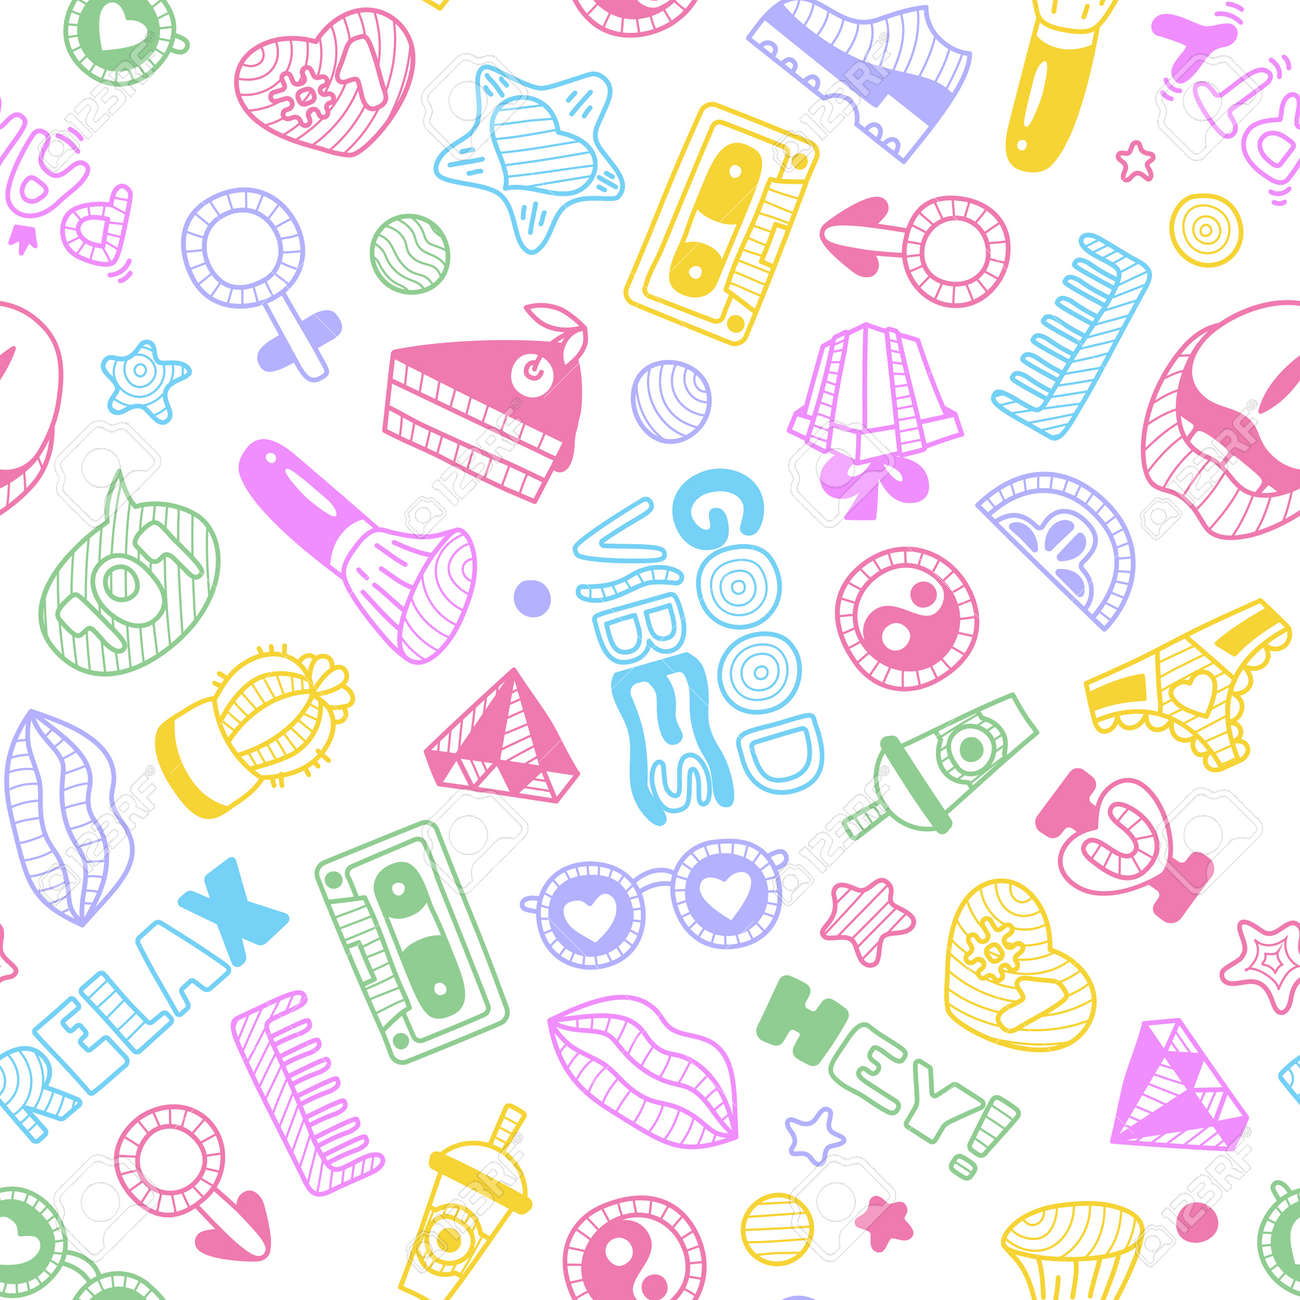 doodle girly pattern or texture stock vector 85650779